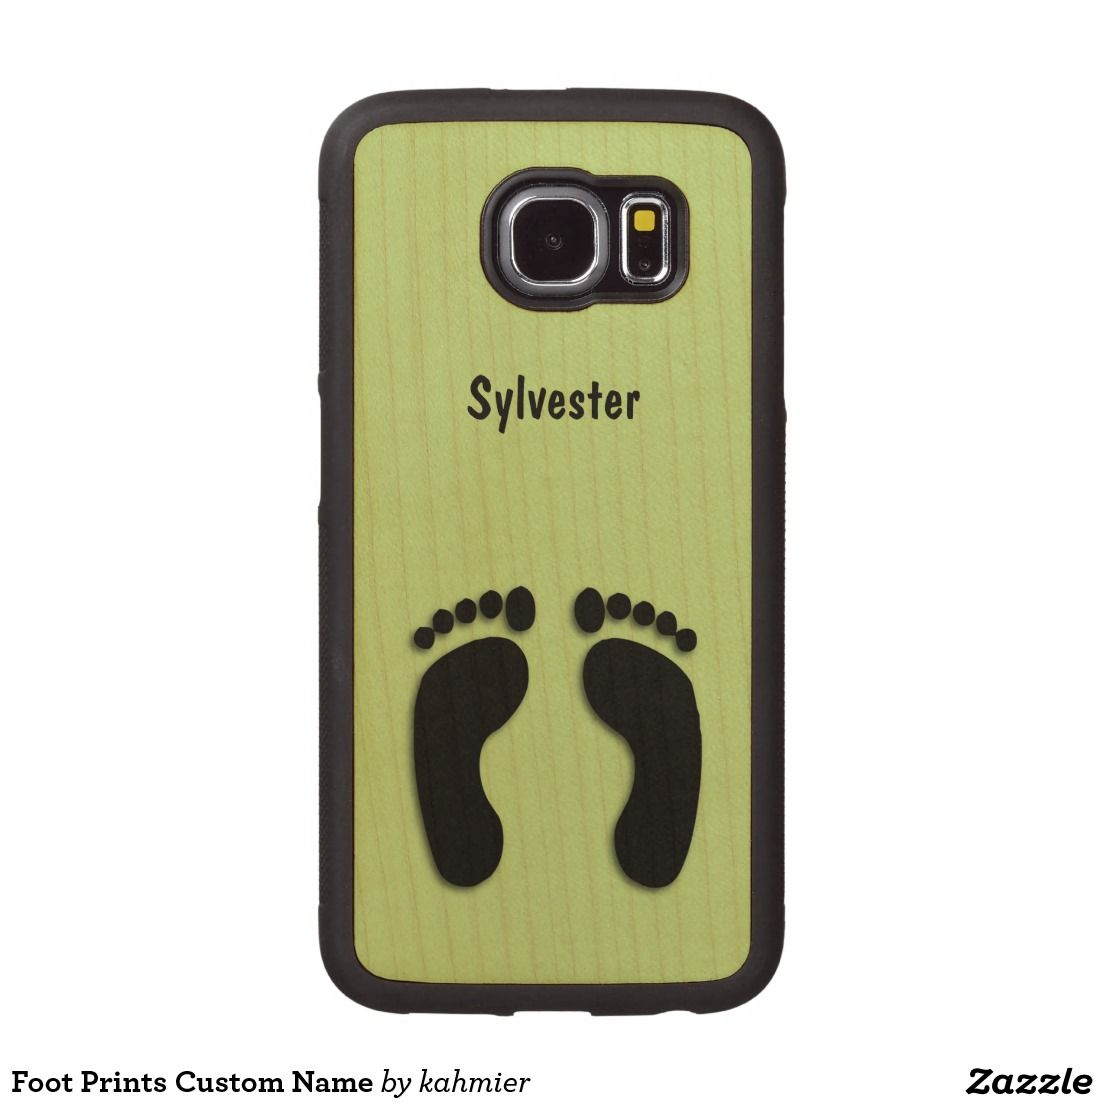 Bare Feet Prints Carved Wood Samsung Galaxy S6 Case